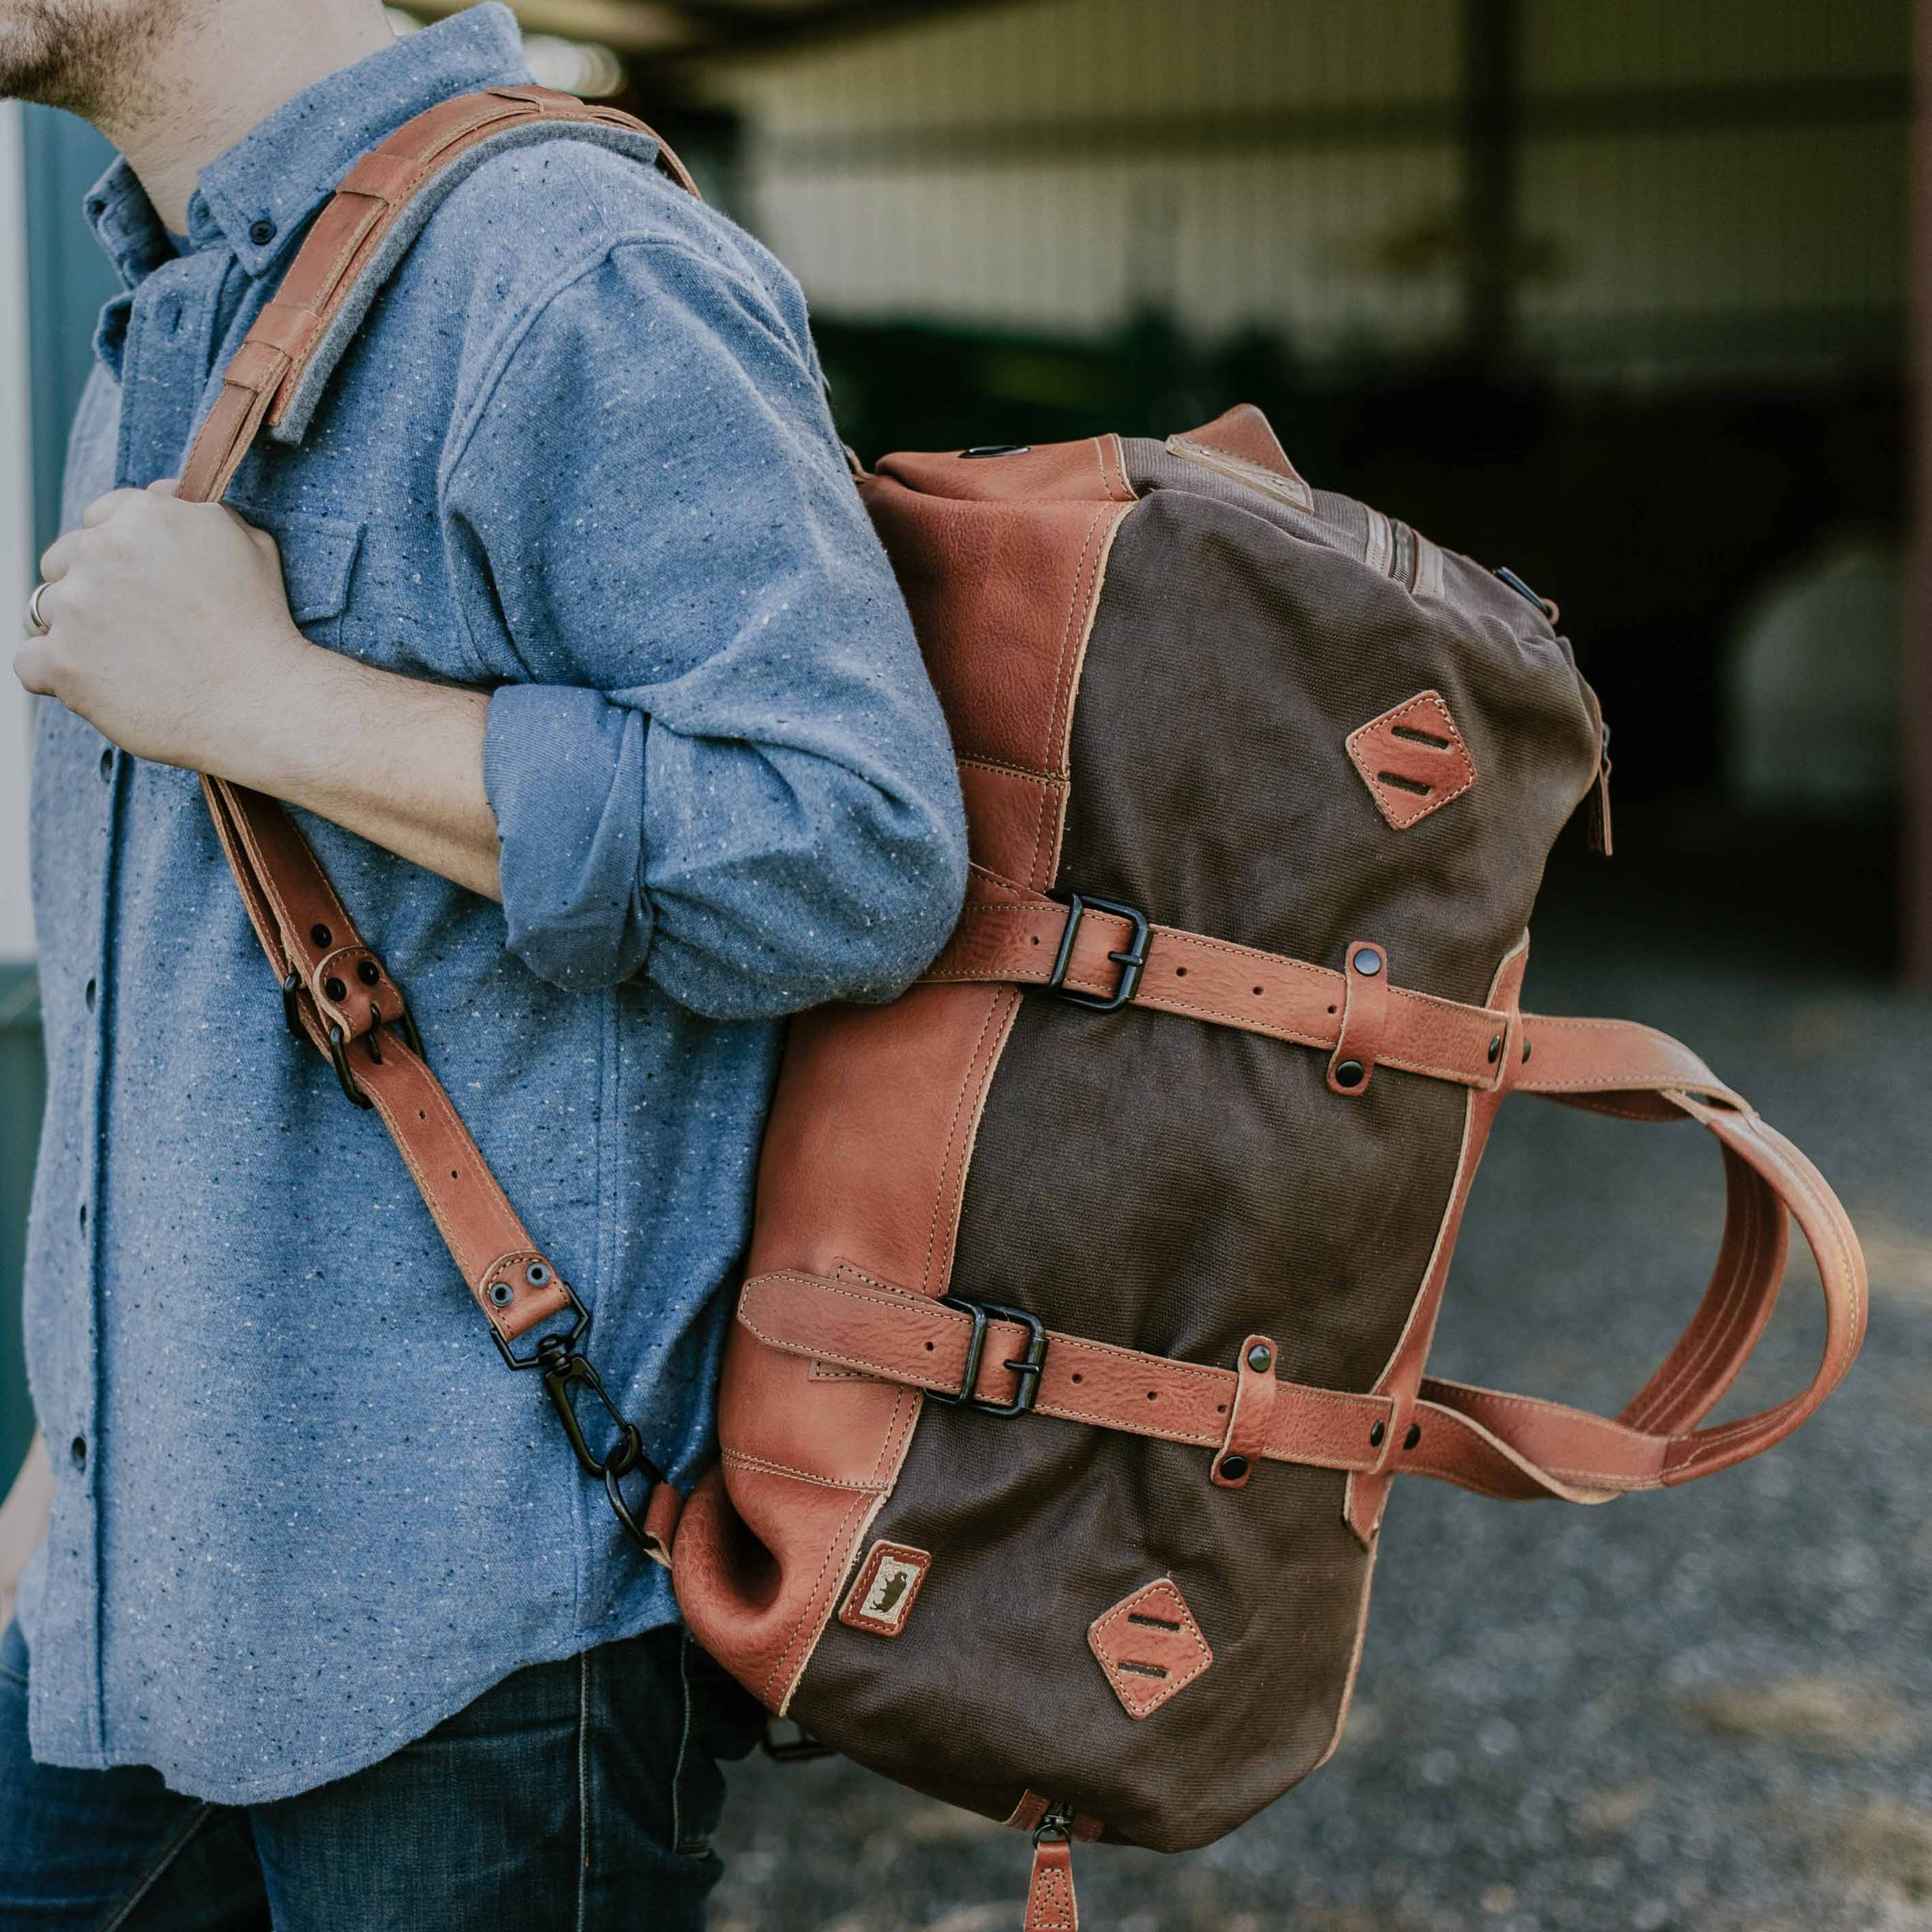 Product Hover Image bags t Bags and Denim ddf4e0f8b0509